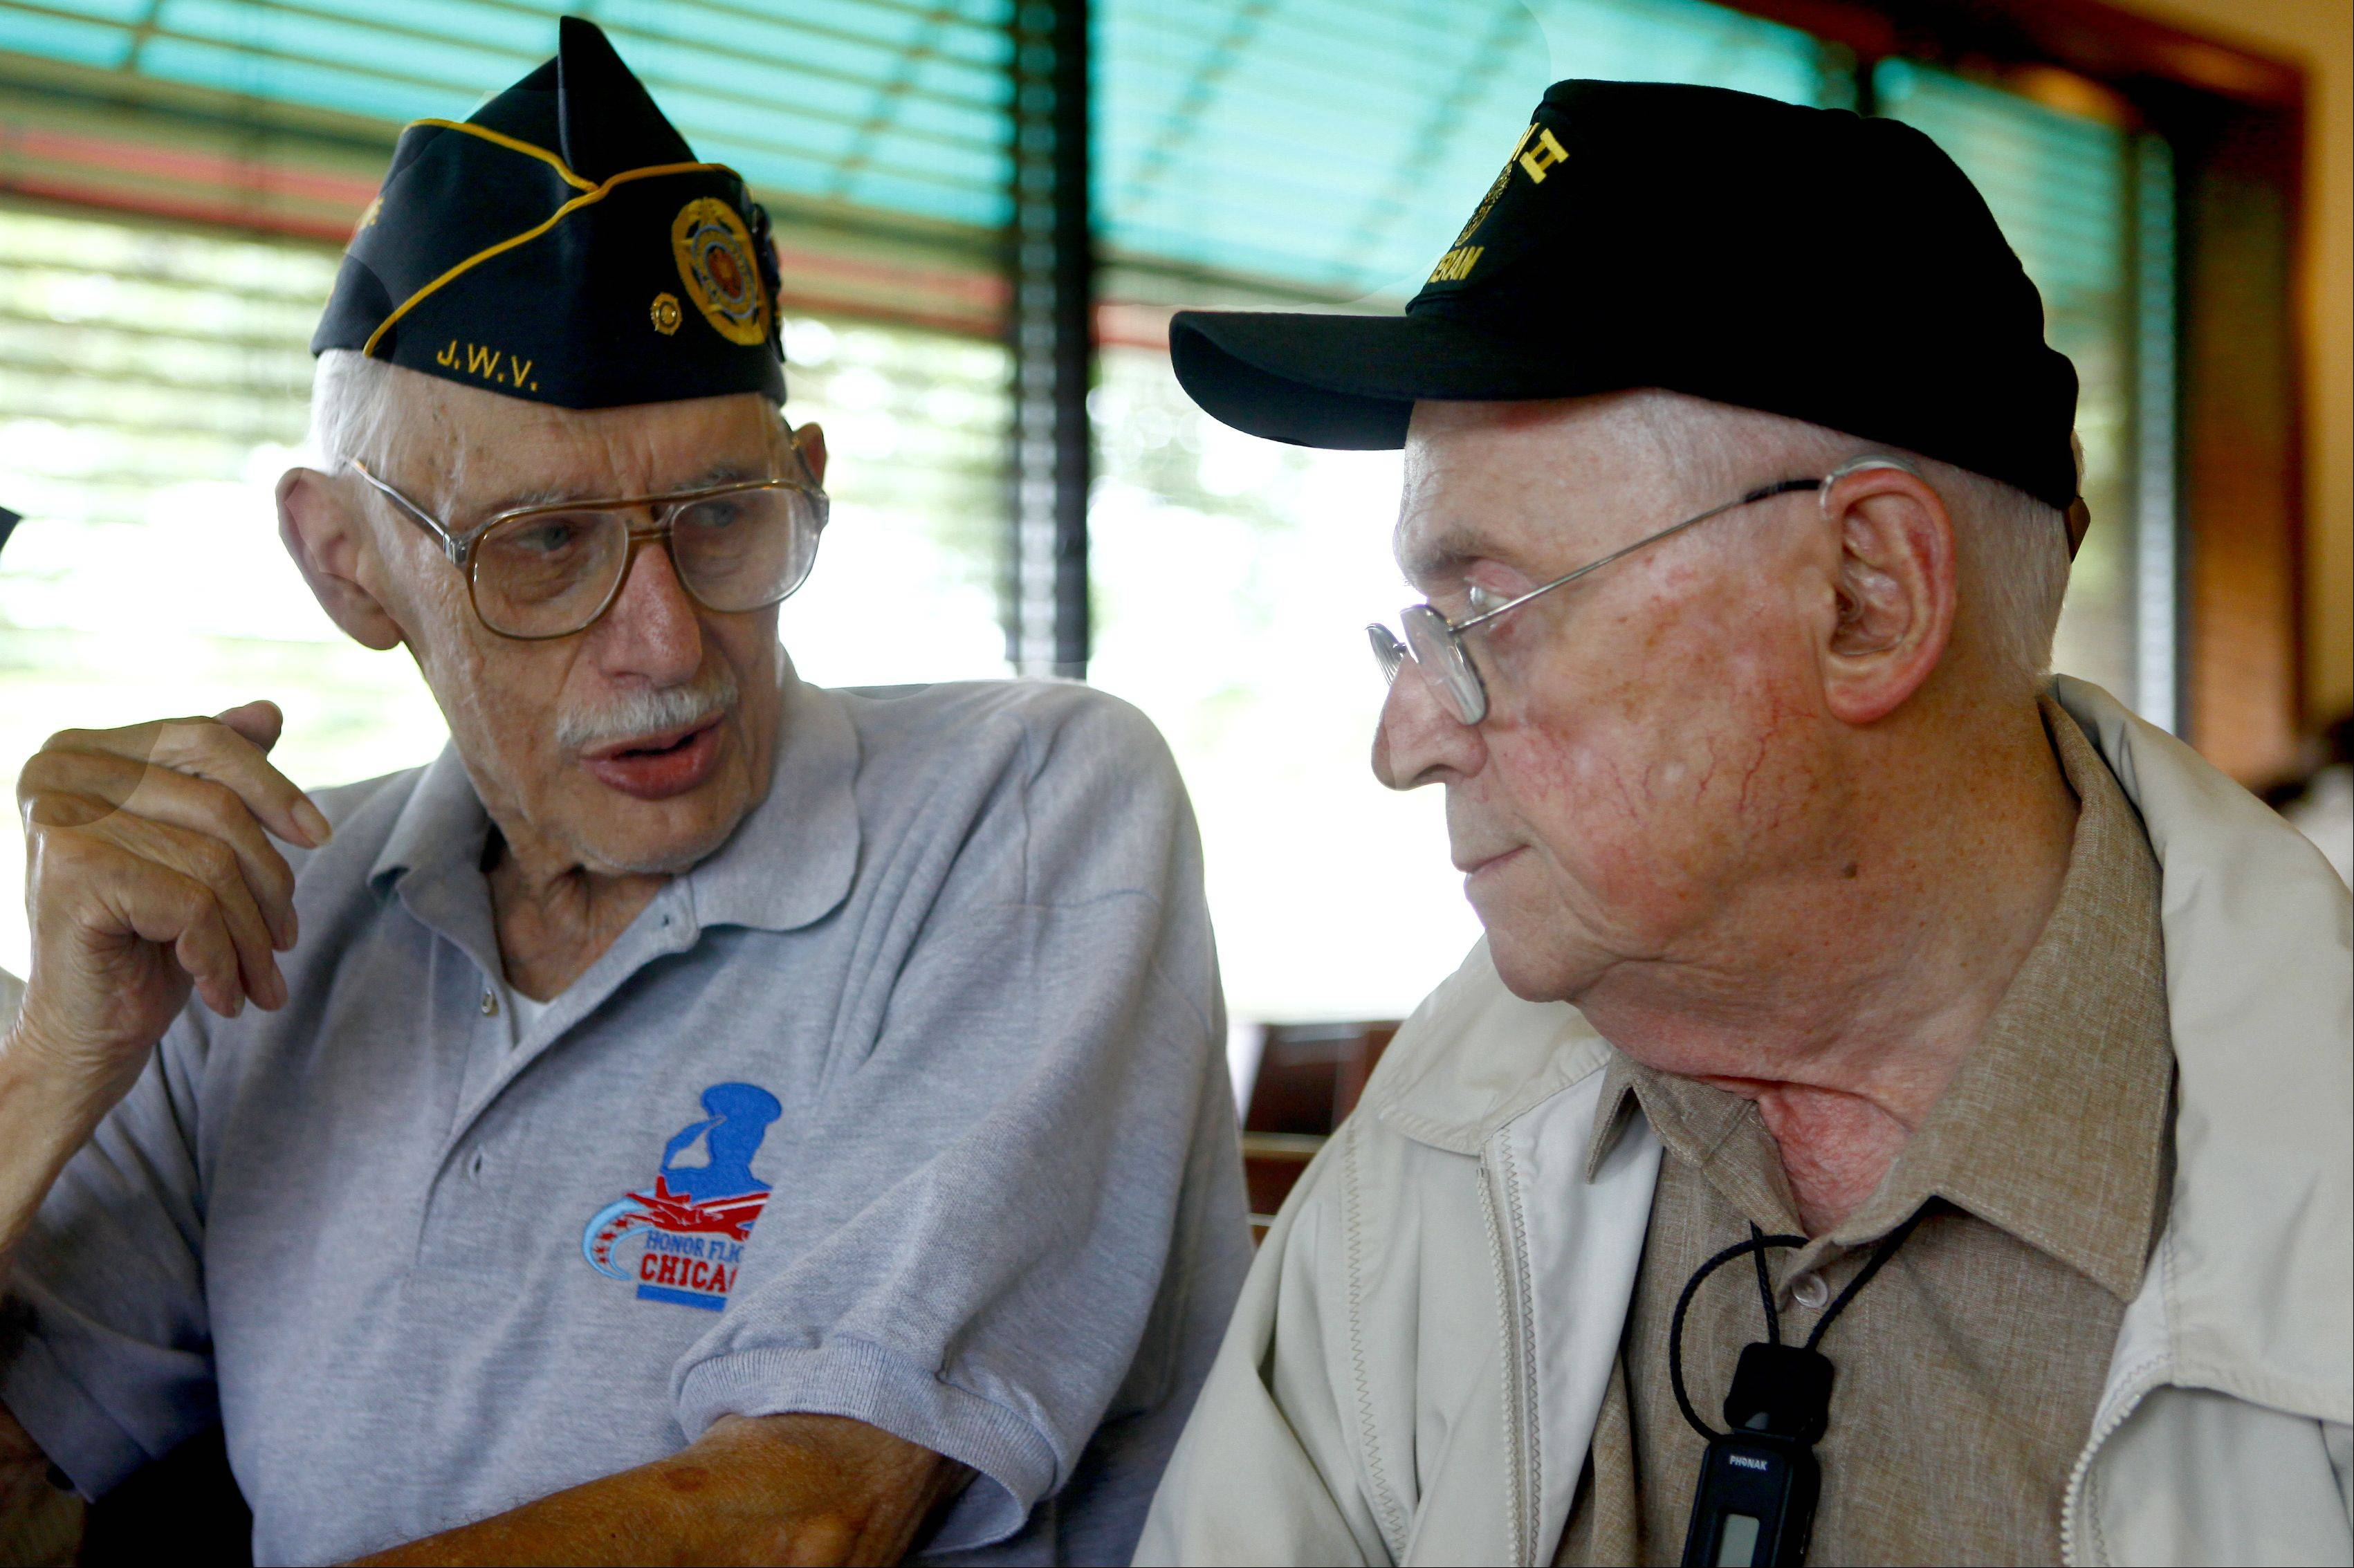 Milton Davis, left, of Wheeling talks with Joe Groner of Northbrook about their time in the service and the Honor Flight for World War II veterans they made Wednesday to Washington.